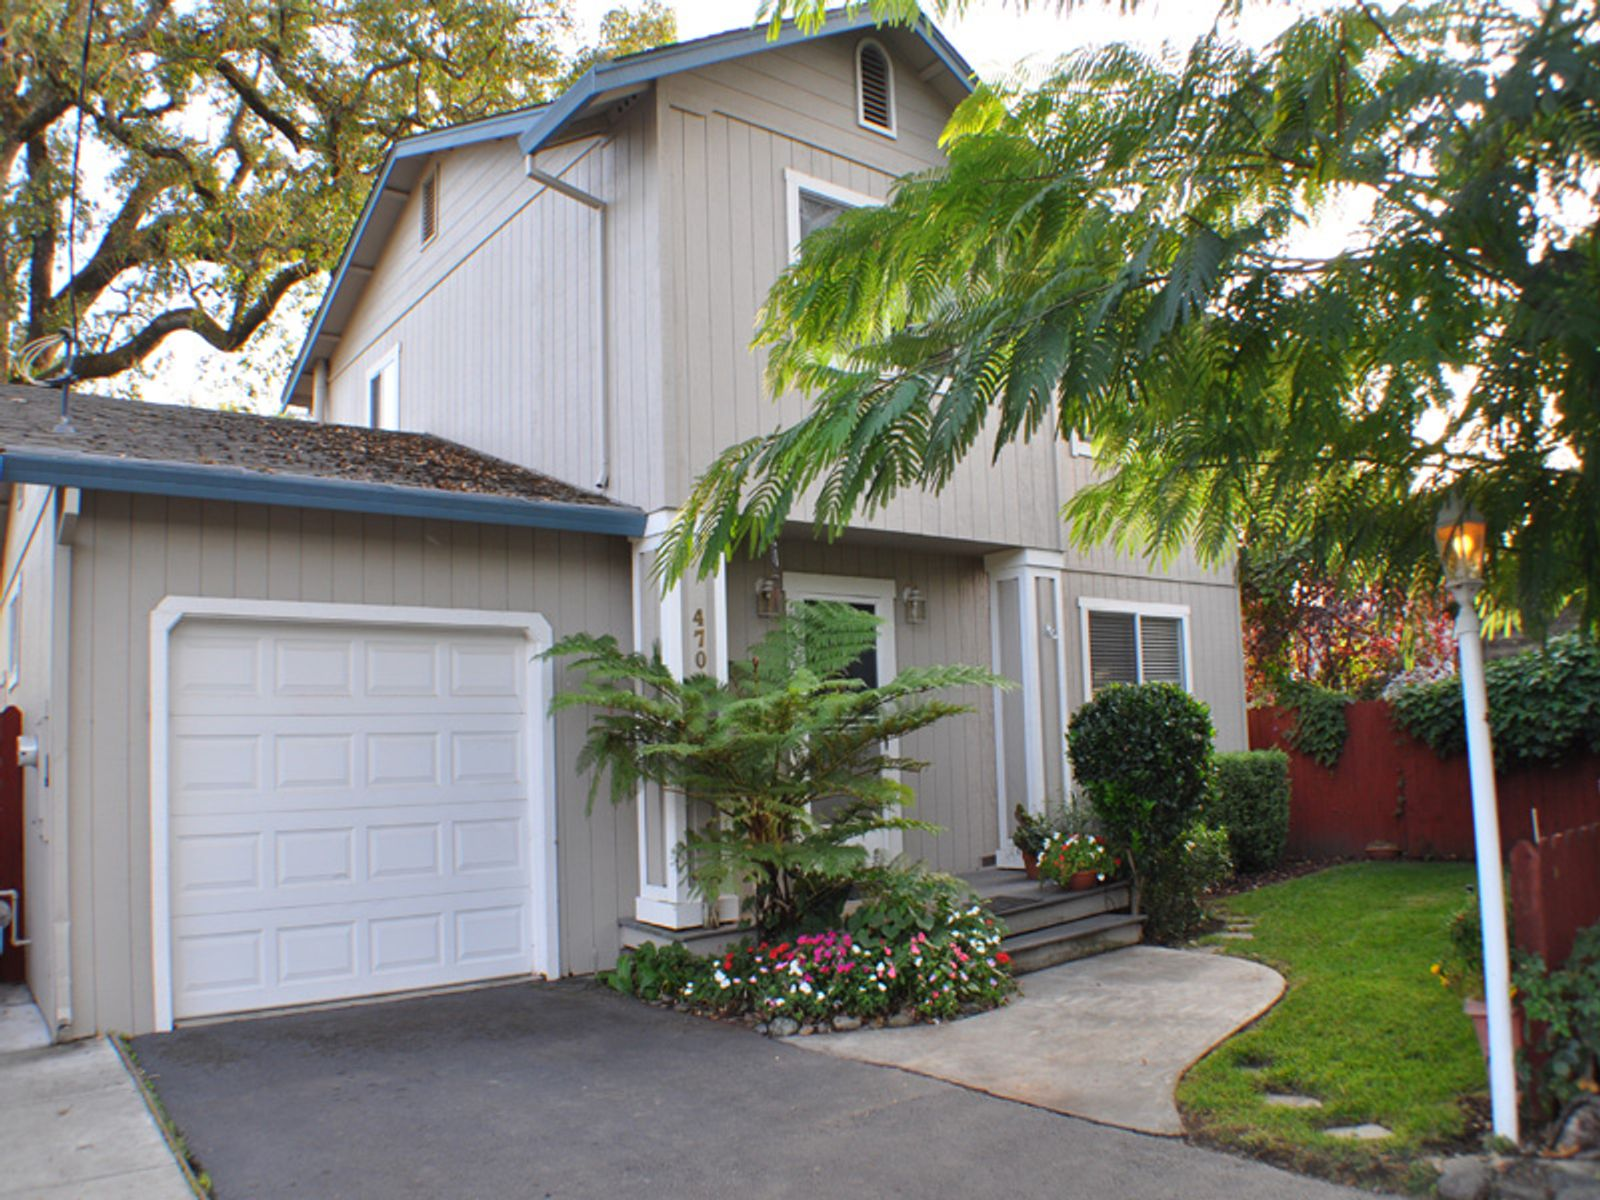 Backyard Privacy, Sonoma CA Single Family Home - Sonoma - Napa Real Estate